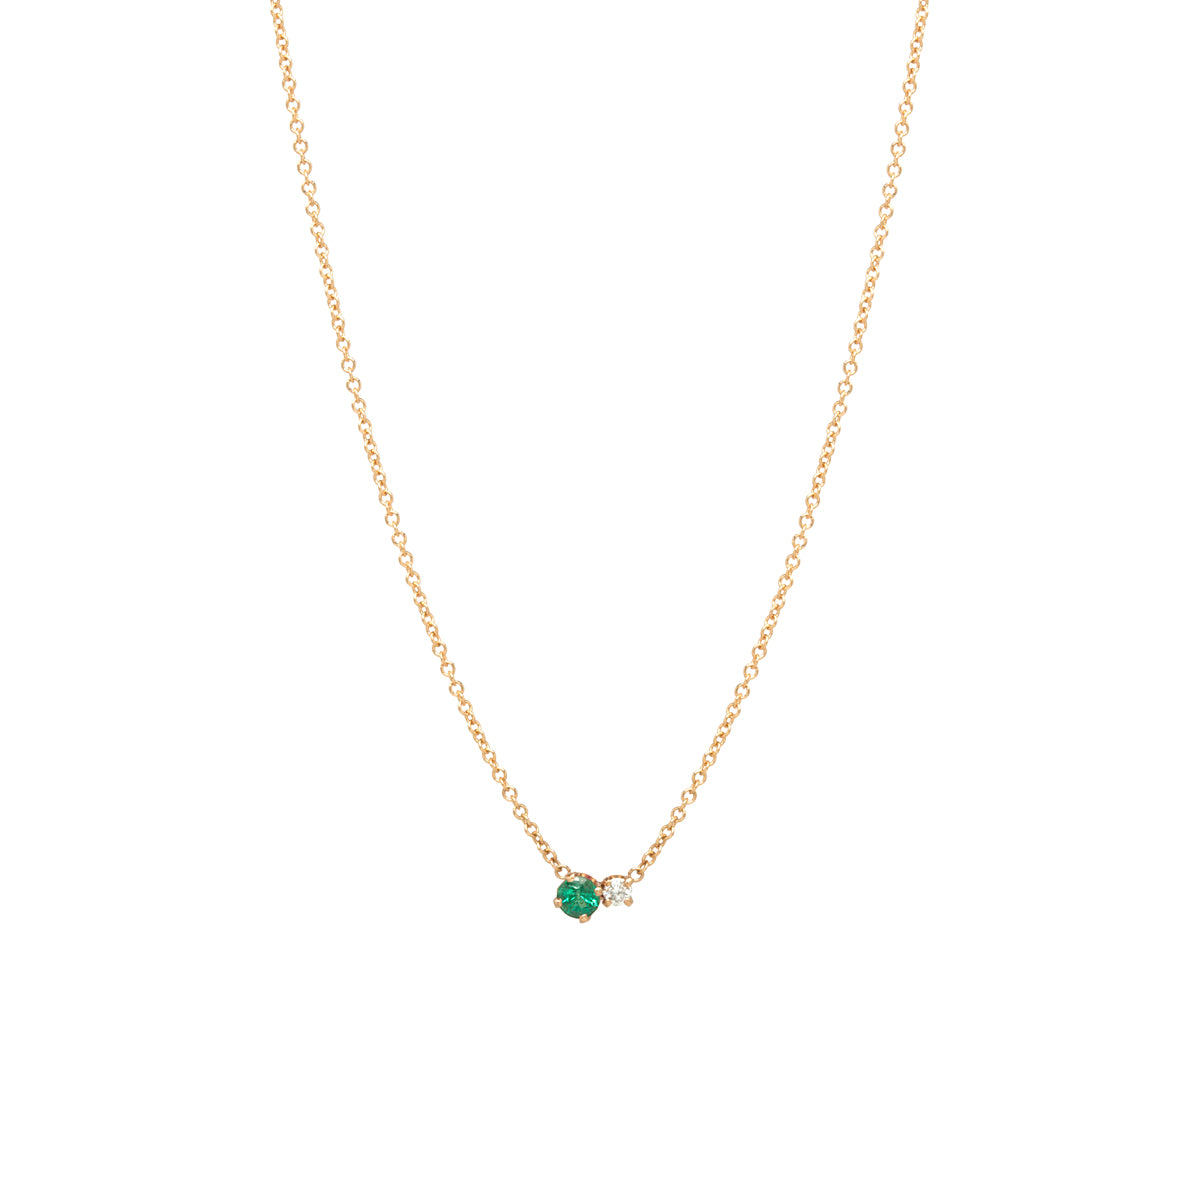 14k Prong Diamond & Emerald Necklace